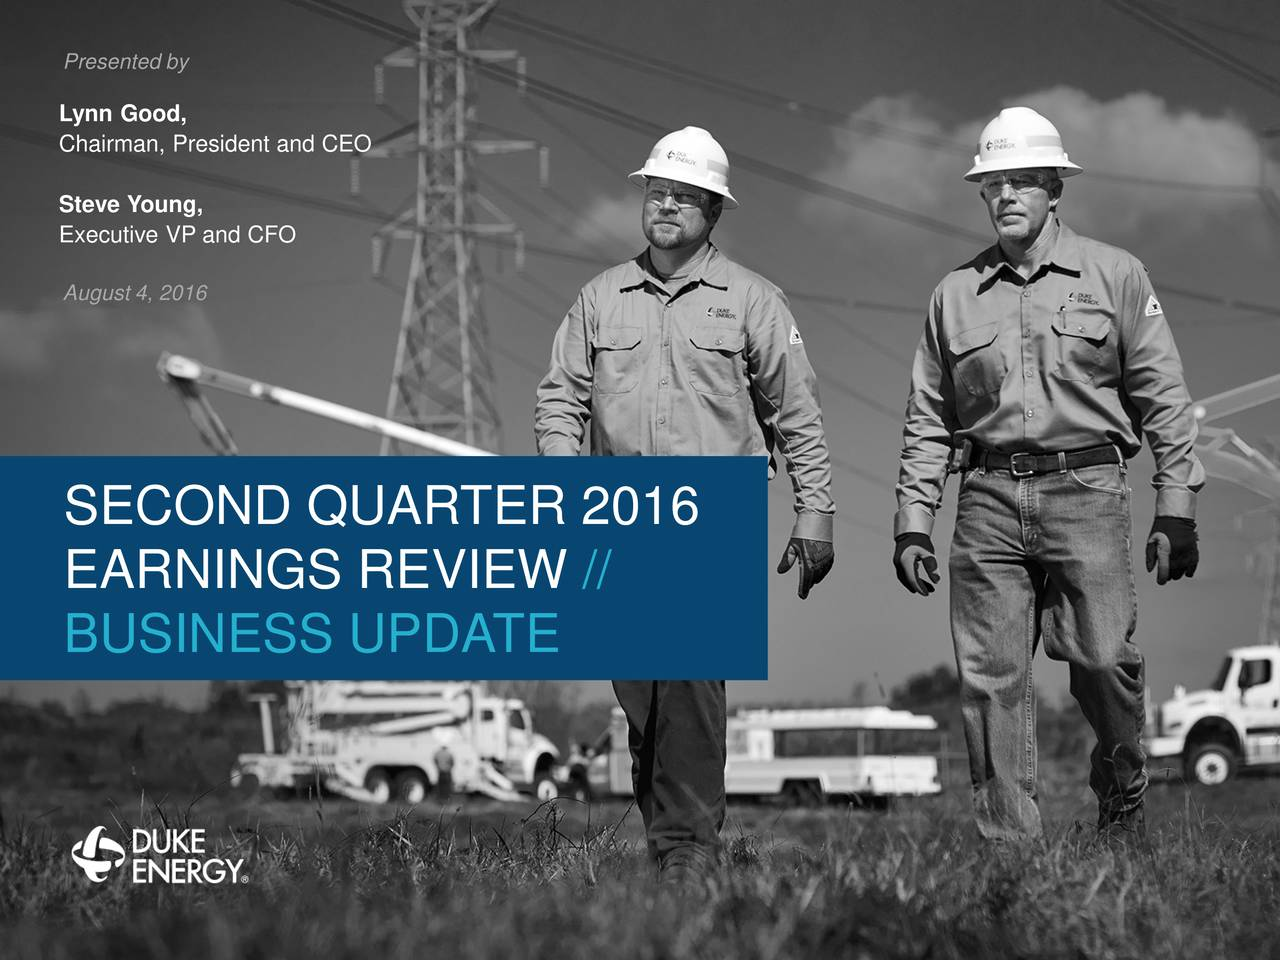 Lynn Good, Chairman, President and CEO Steve Young, Executive VP and CFO August 4, 2016 SECOND QUARTER 2016 EARNINGS REVIEW // BUSINESS UPDATE